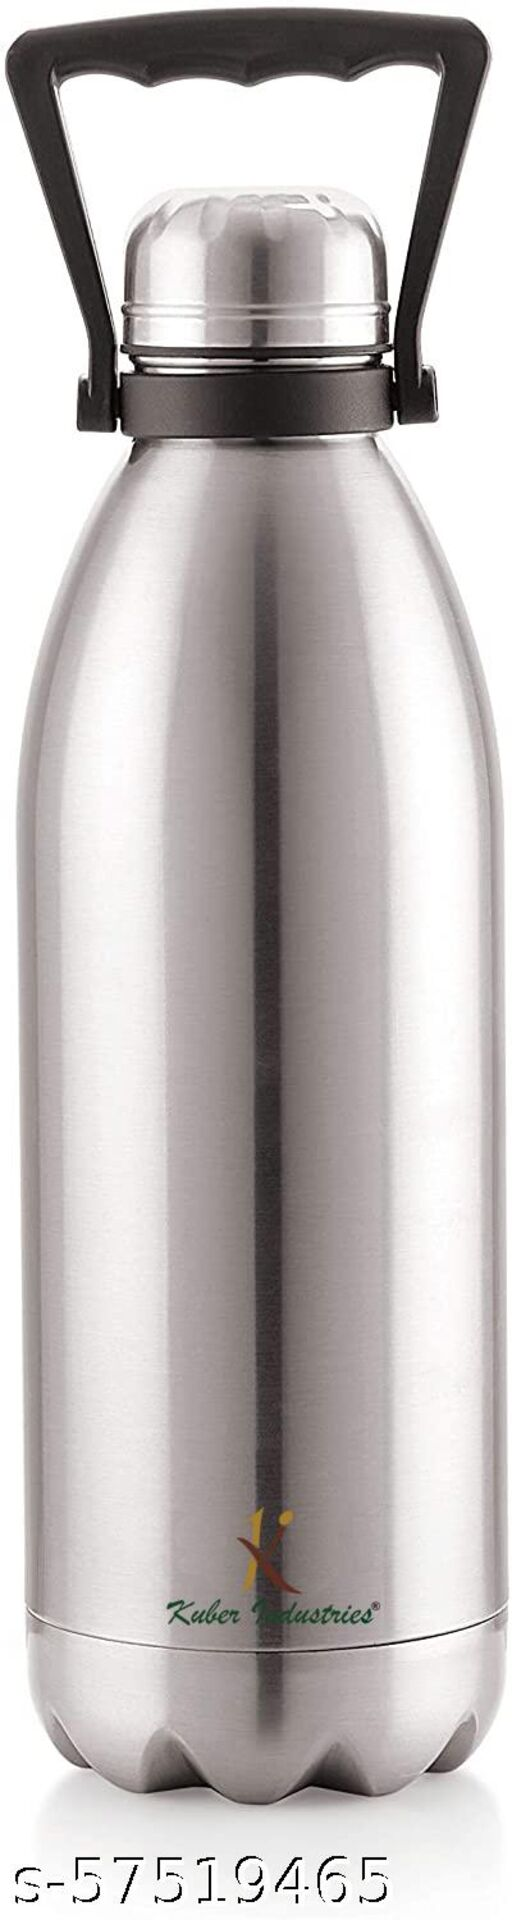 Kuber Industries Stainless Steel 24 Hours Plus Hot And Cold Water Bottle, 2.2 Litre (Silver)